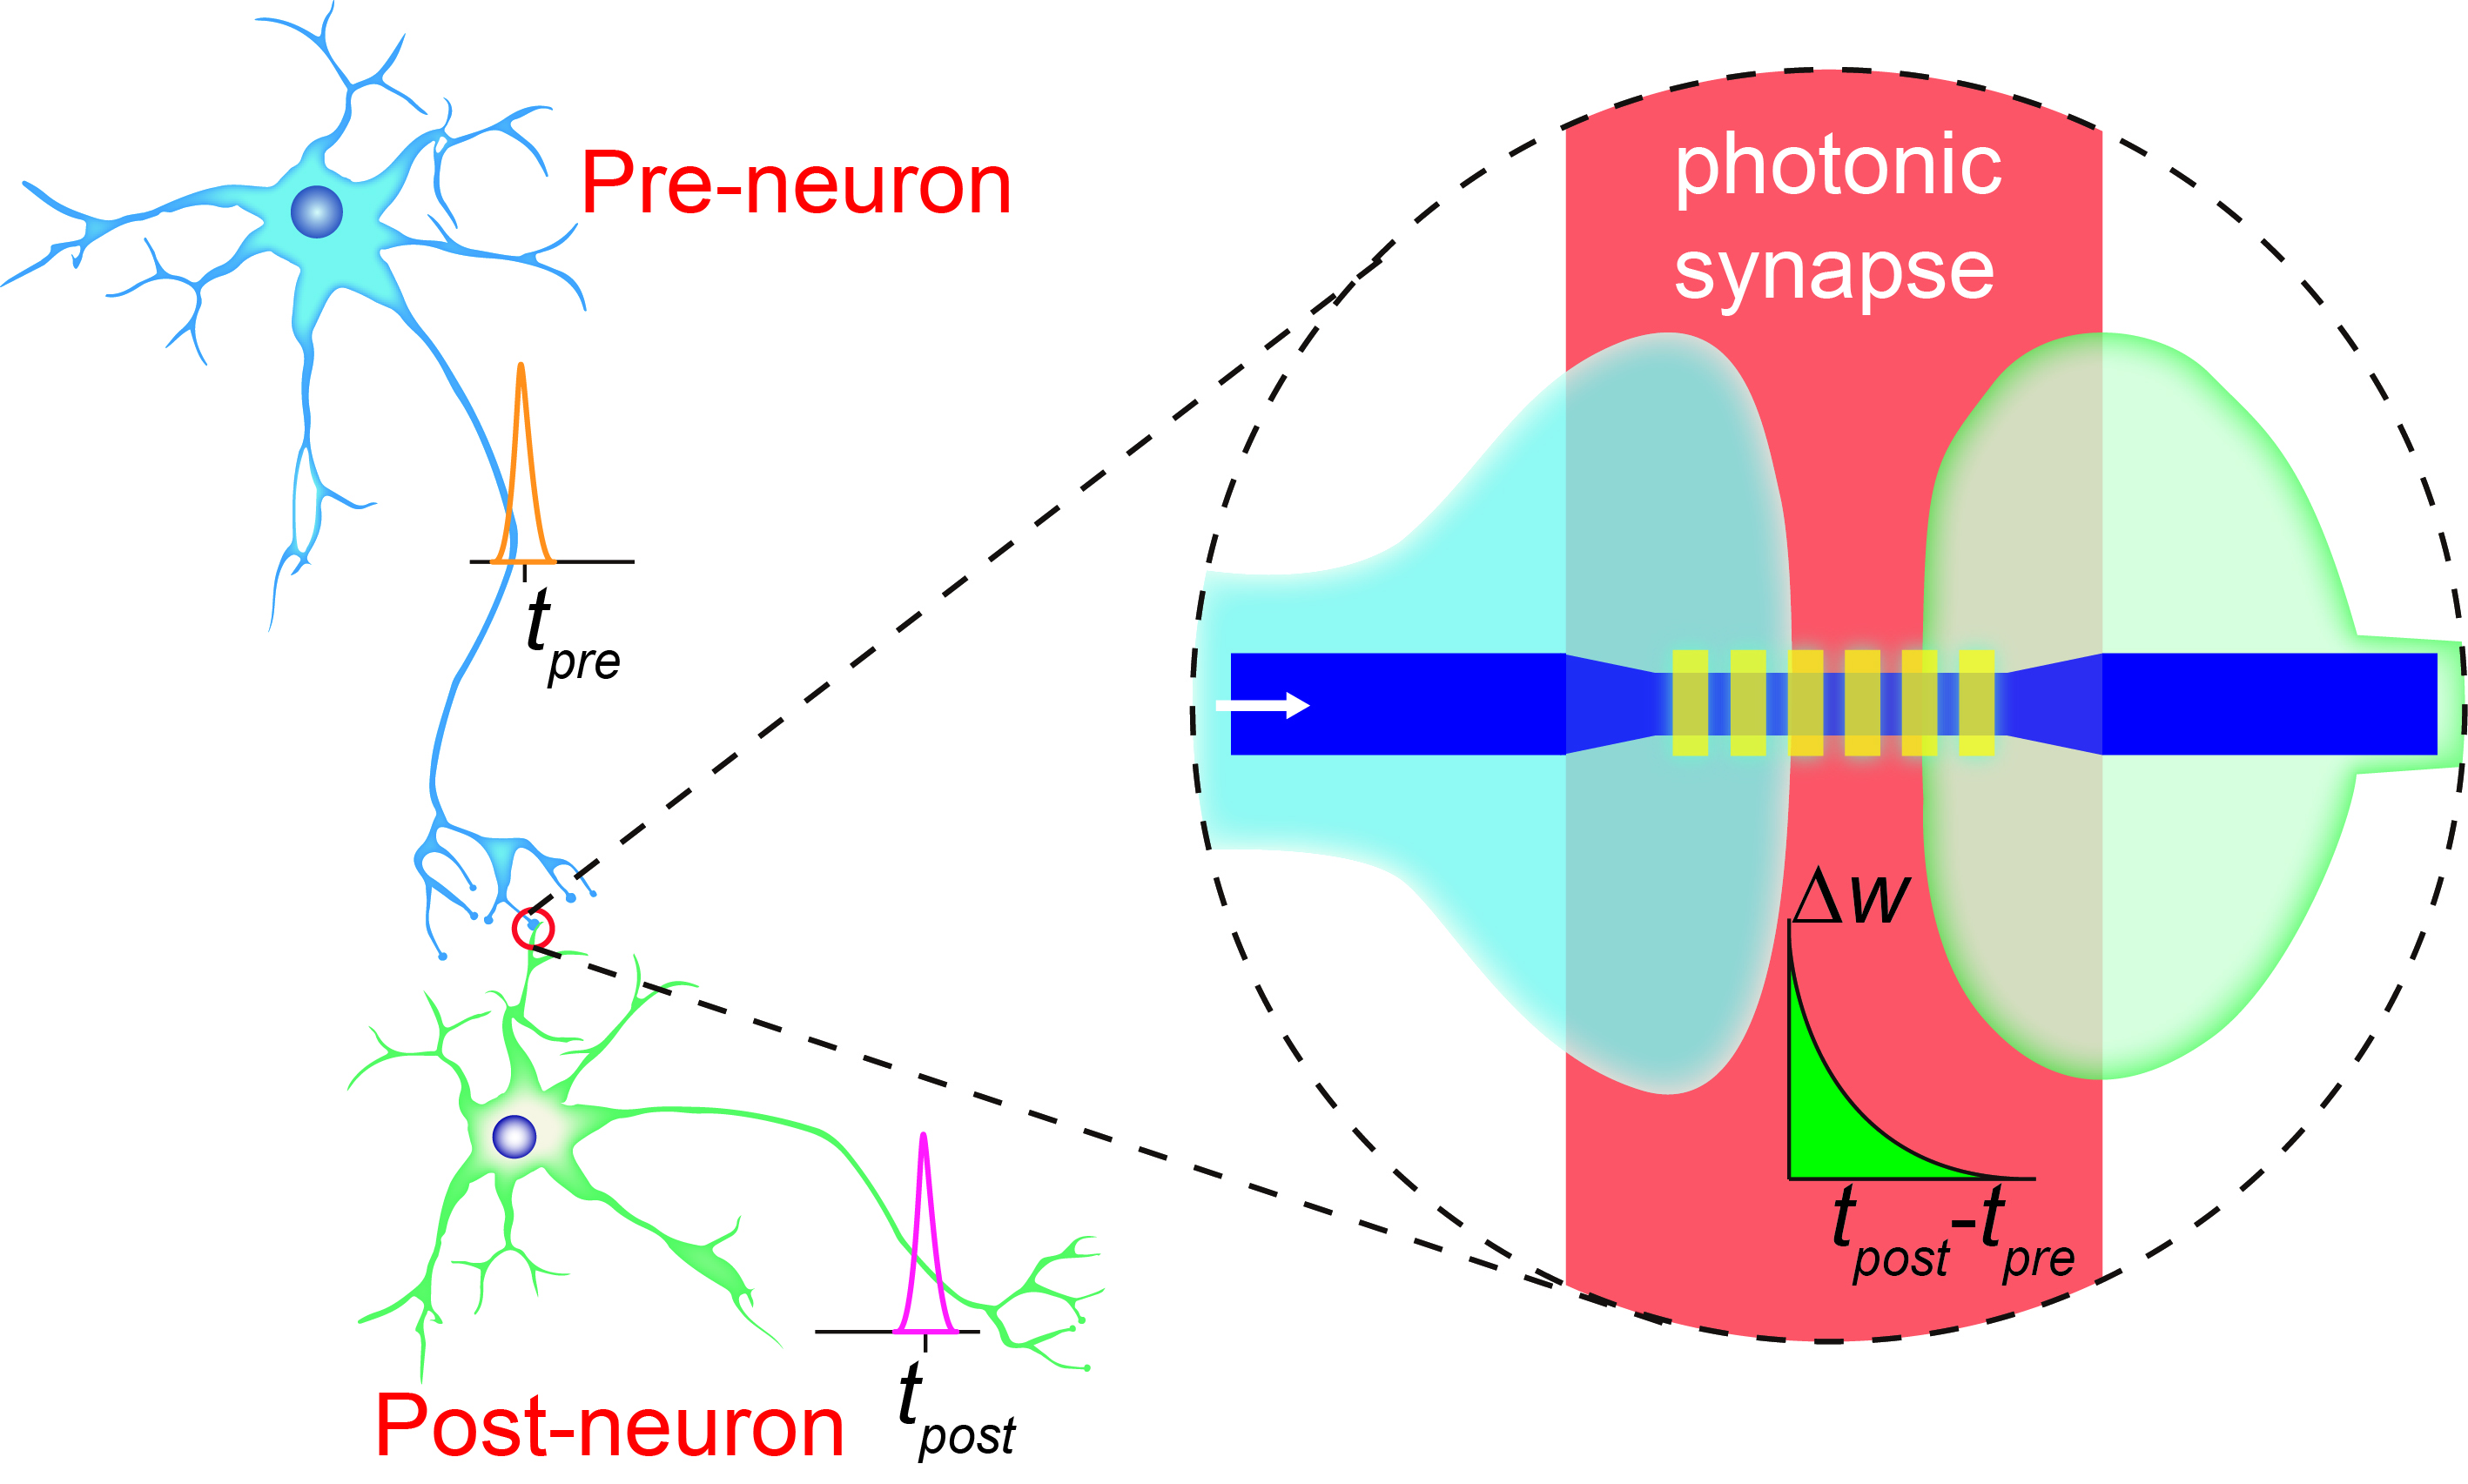 Move towards holy grail of computing by creation of brain like a schematic of a photonic synapse mimicking the biological synapse connecting neurons credit harish bhaskaran ccuart Gallery